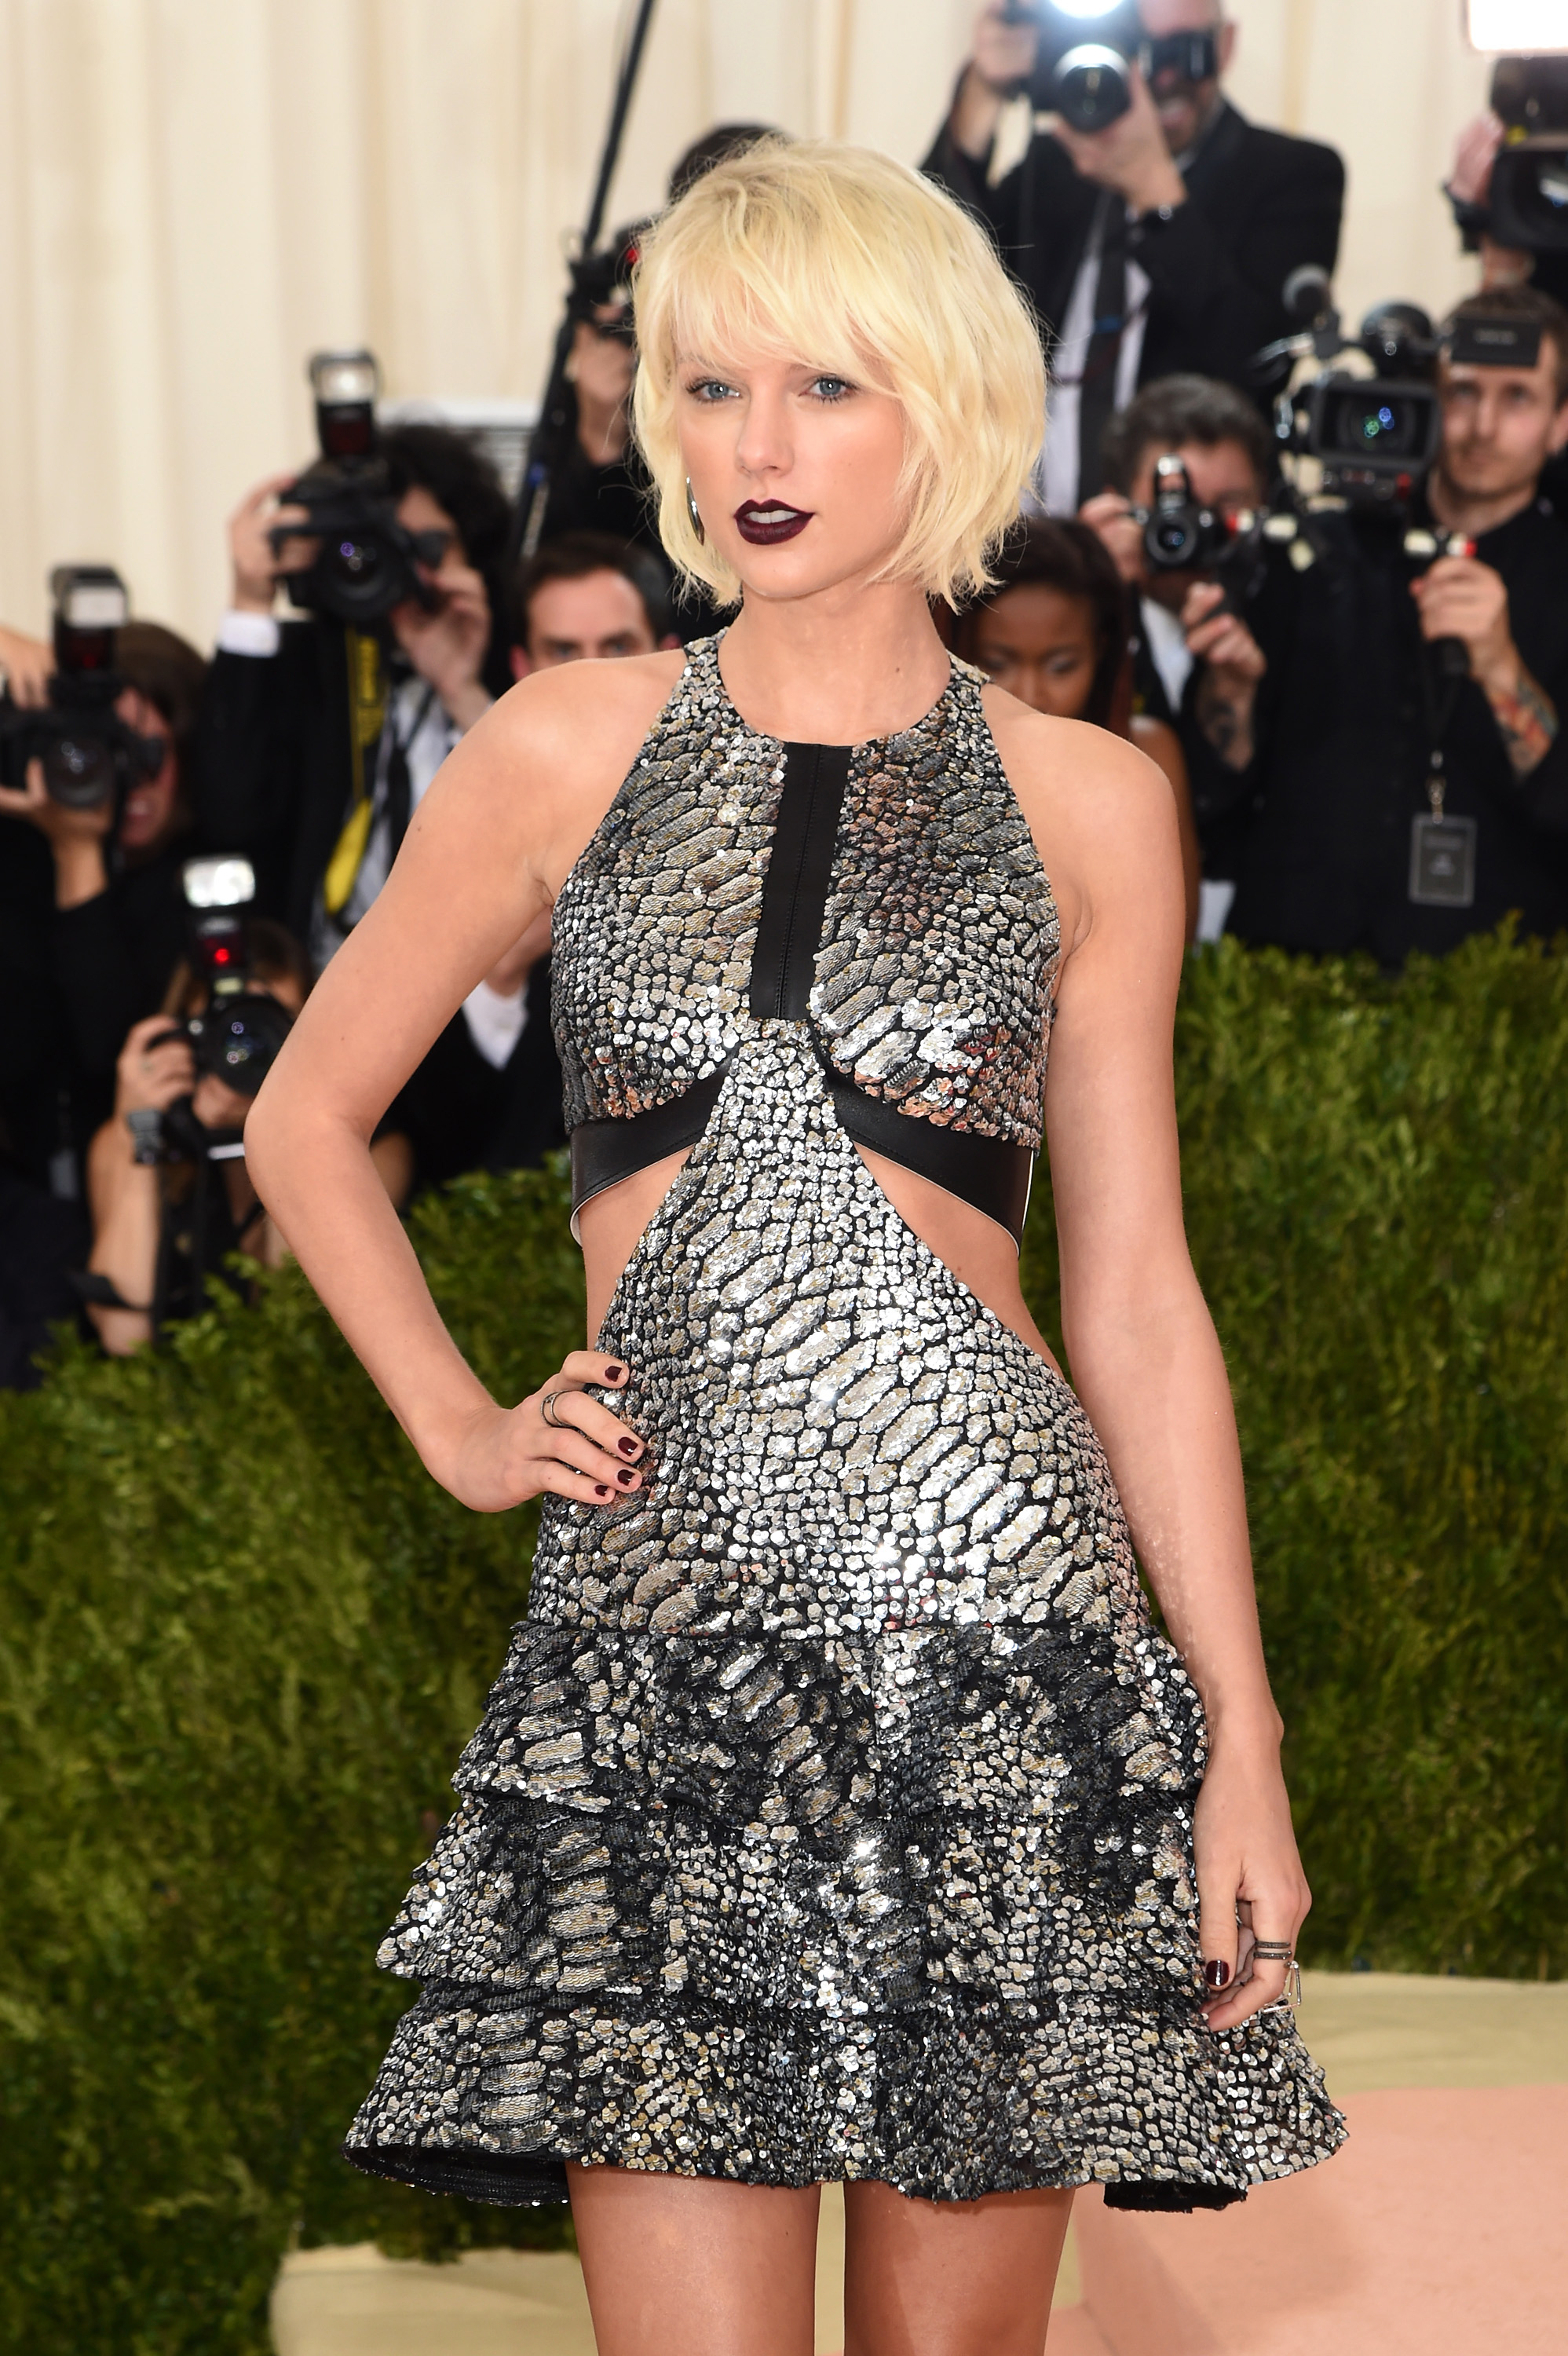 Taylor Swift attends the  Manus x Machina: Fashion In An Age Of Technology  Costume Institute Gala at Metropolitan Museum of Art on May 2, 2016 in New York City.